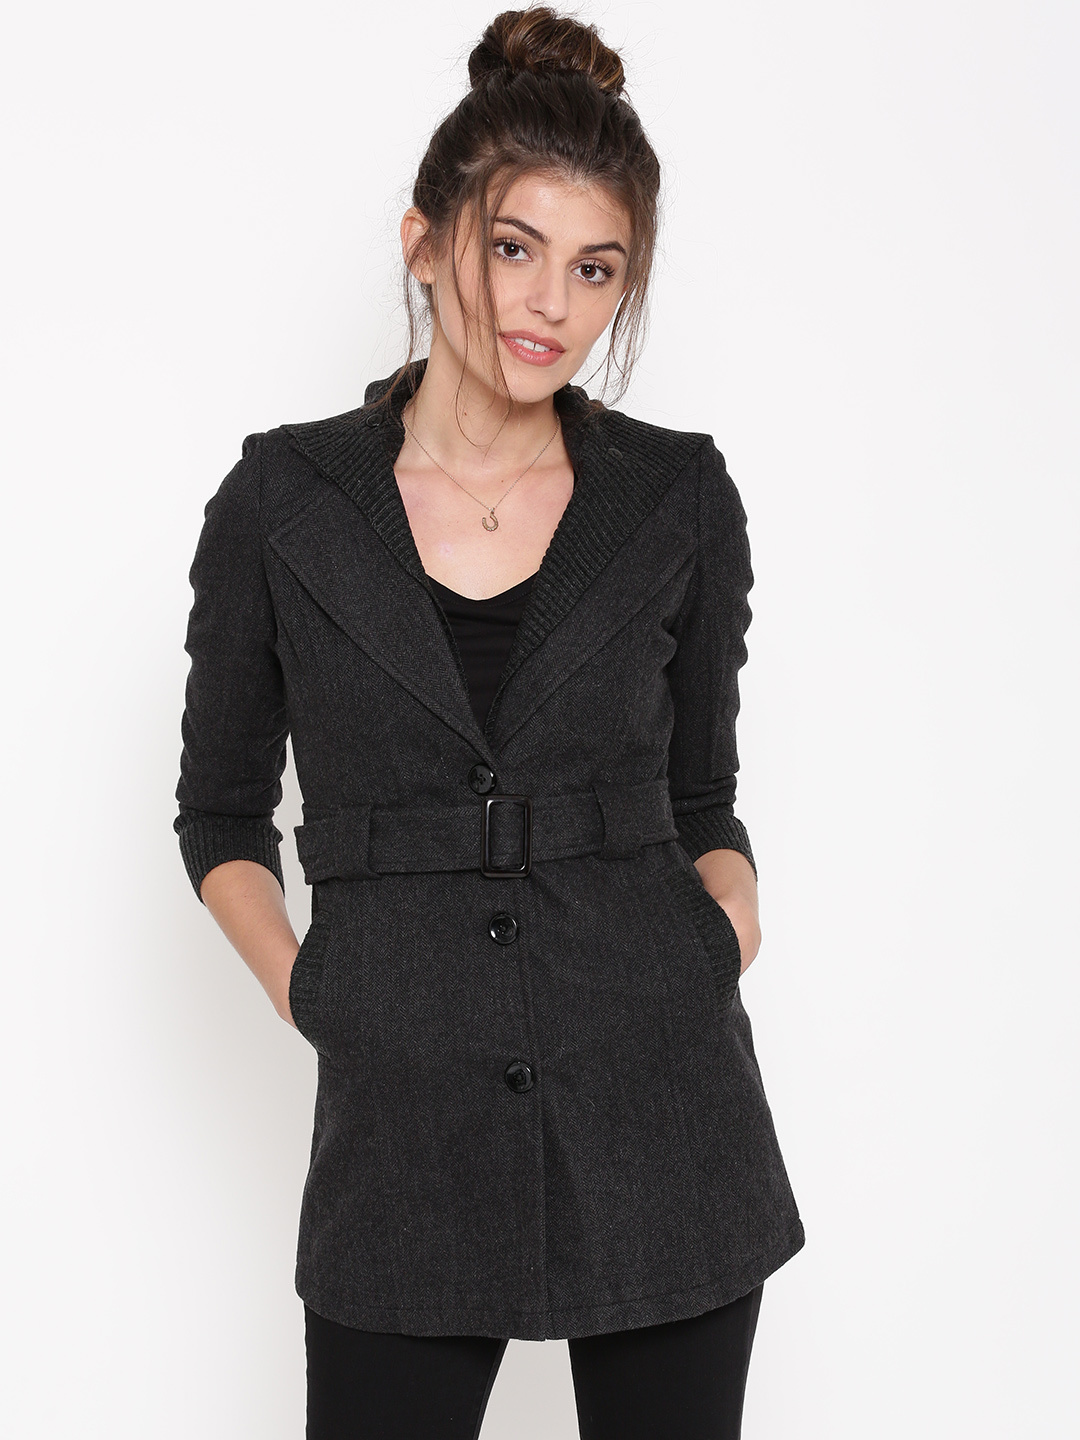 Izabel London by Pantaloons Charcoal Grey Patterned Trench Coat with Detachable Hoodie